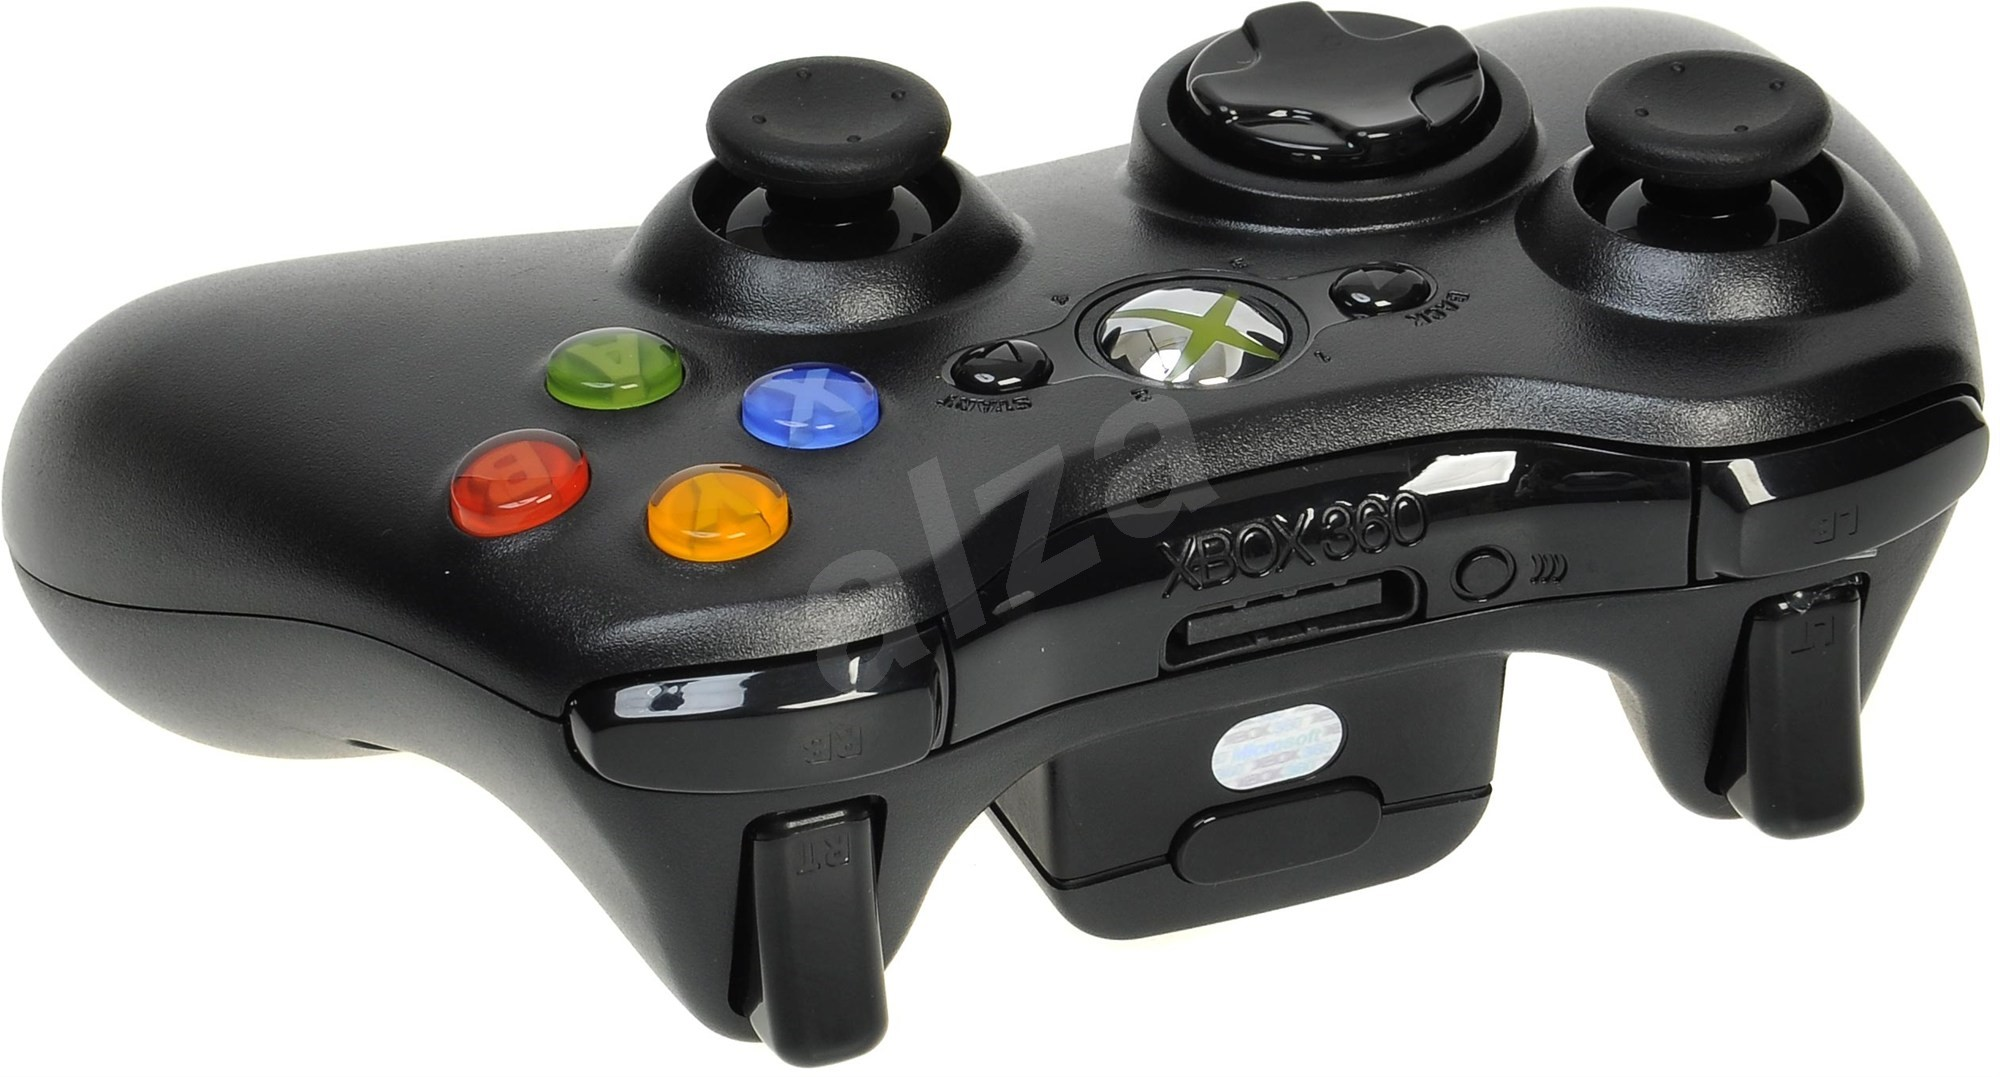 microsoft xbox 360 wireless controller black new gamepad. Black Bedroom Furniture Sets. Home Design Ideas